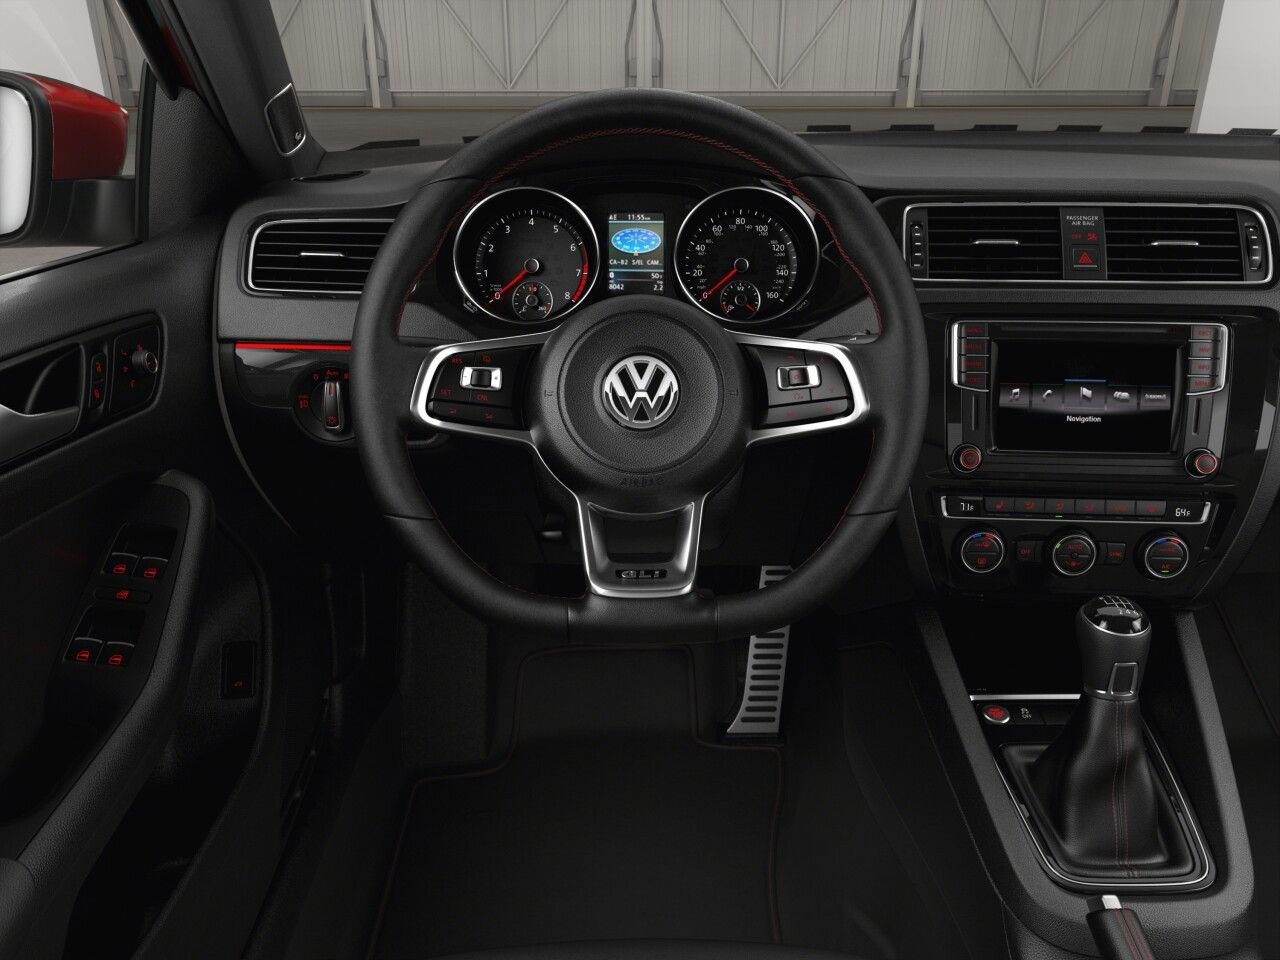 Check Out The Volkswagen I Just Built On Vw Com Volkswagen Jetta